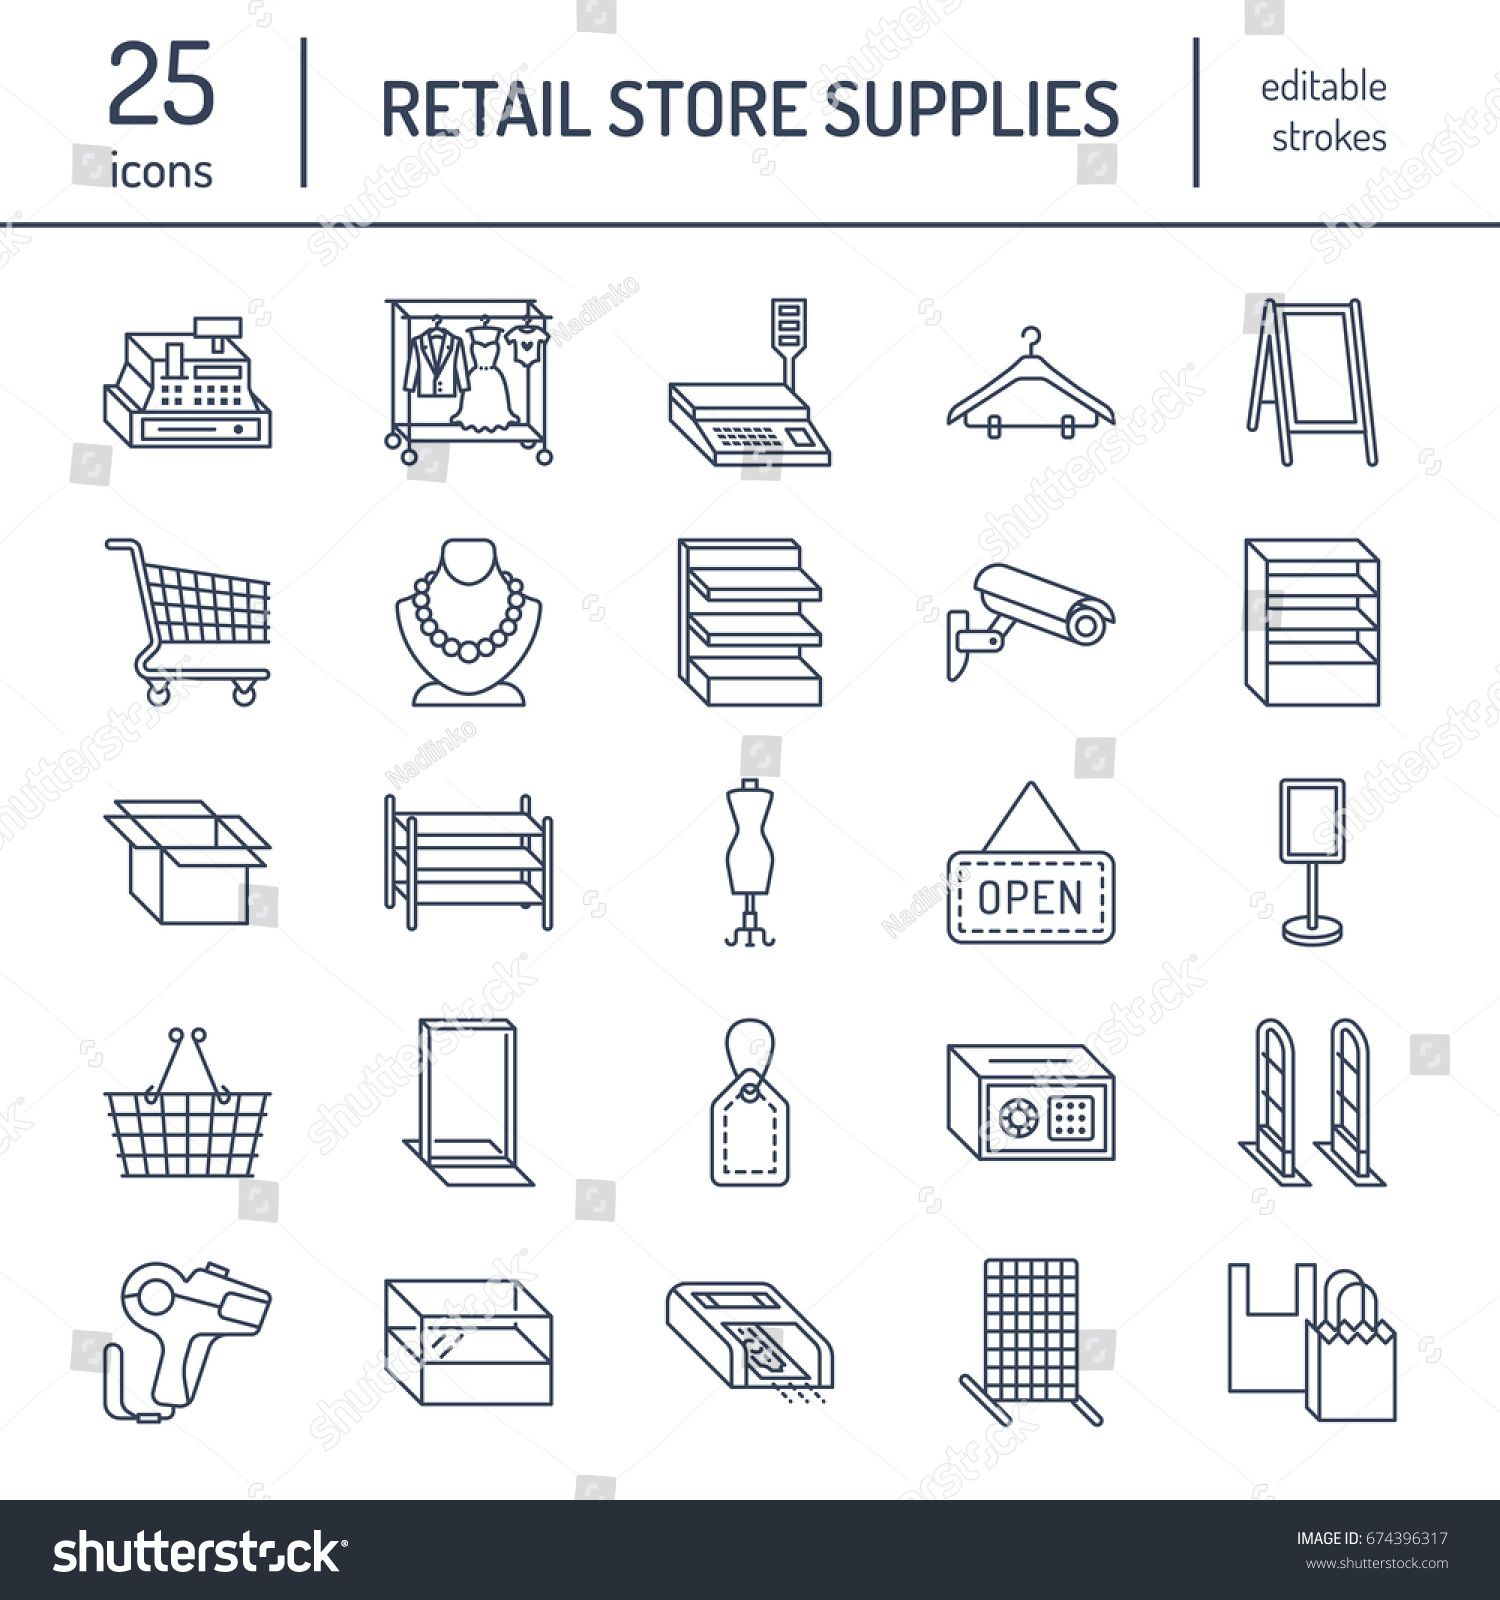 Retail Store Supplies Line Icons Trade Shop Equipment Signs Commercial Objects Cash Register Basket In 2020 Social Media Design Graphics Shop Signs Store Supply